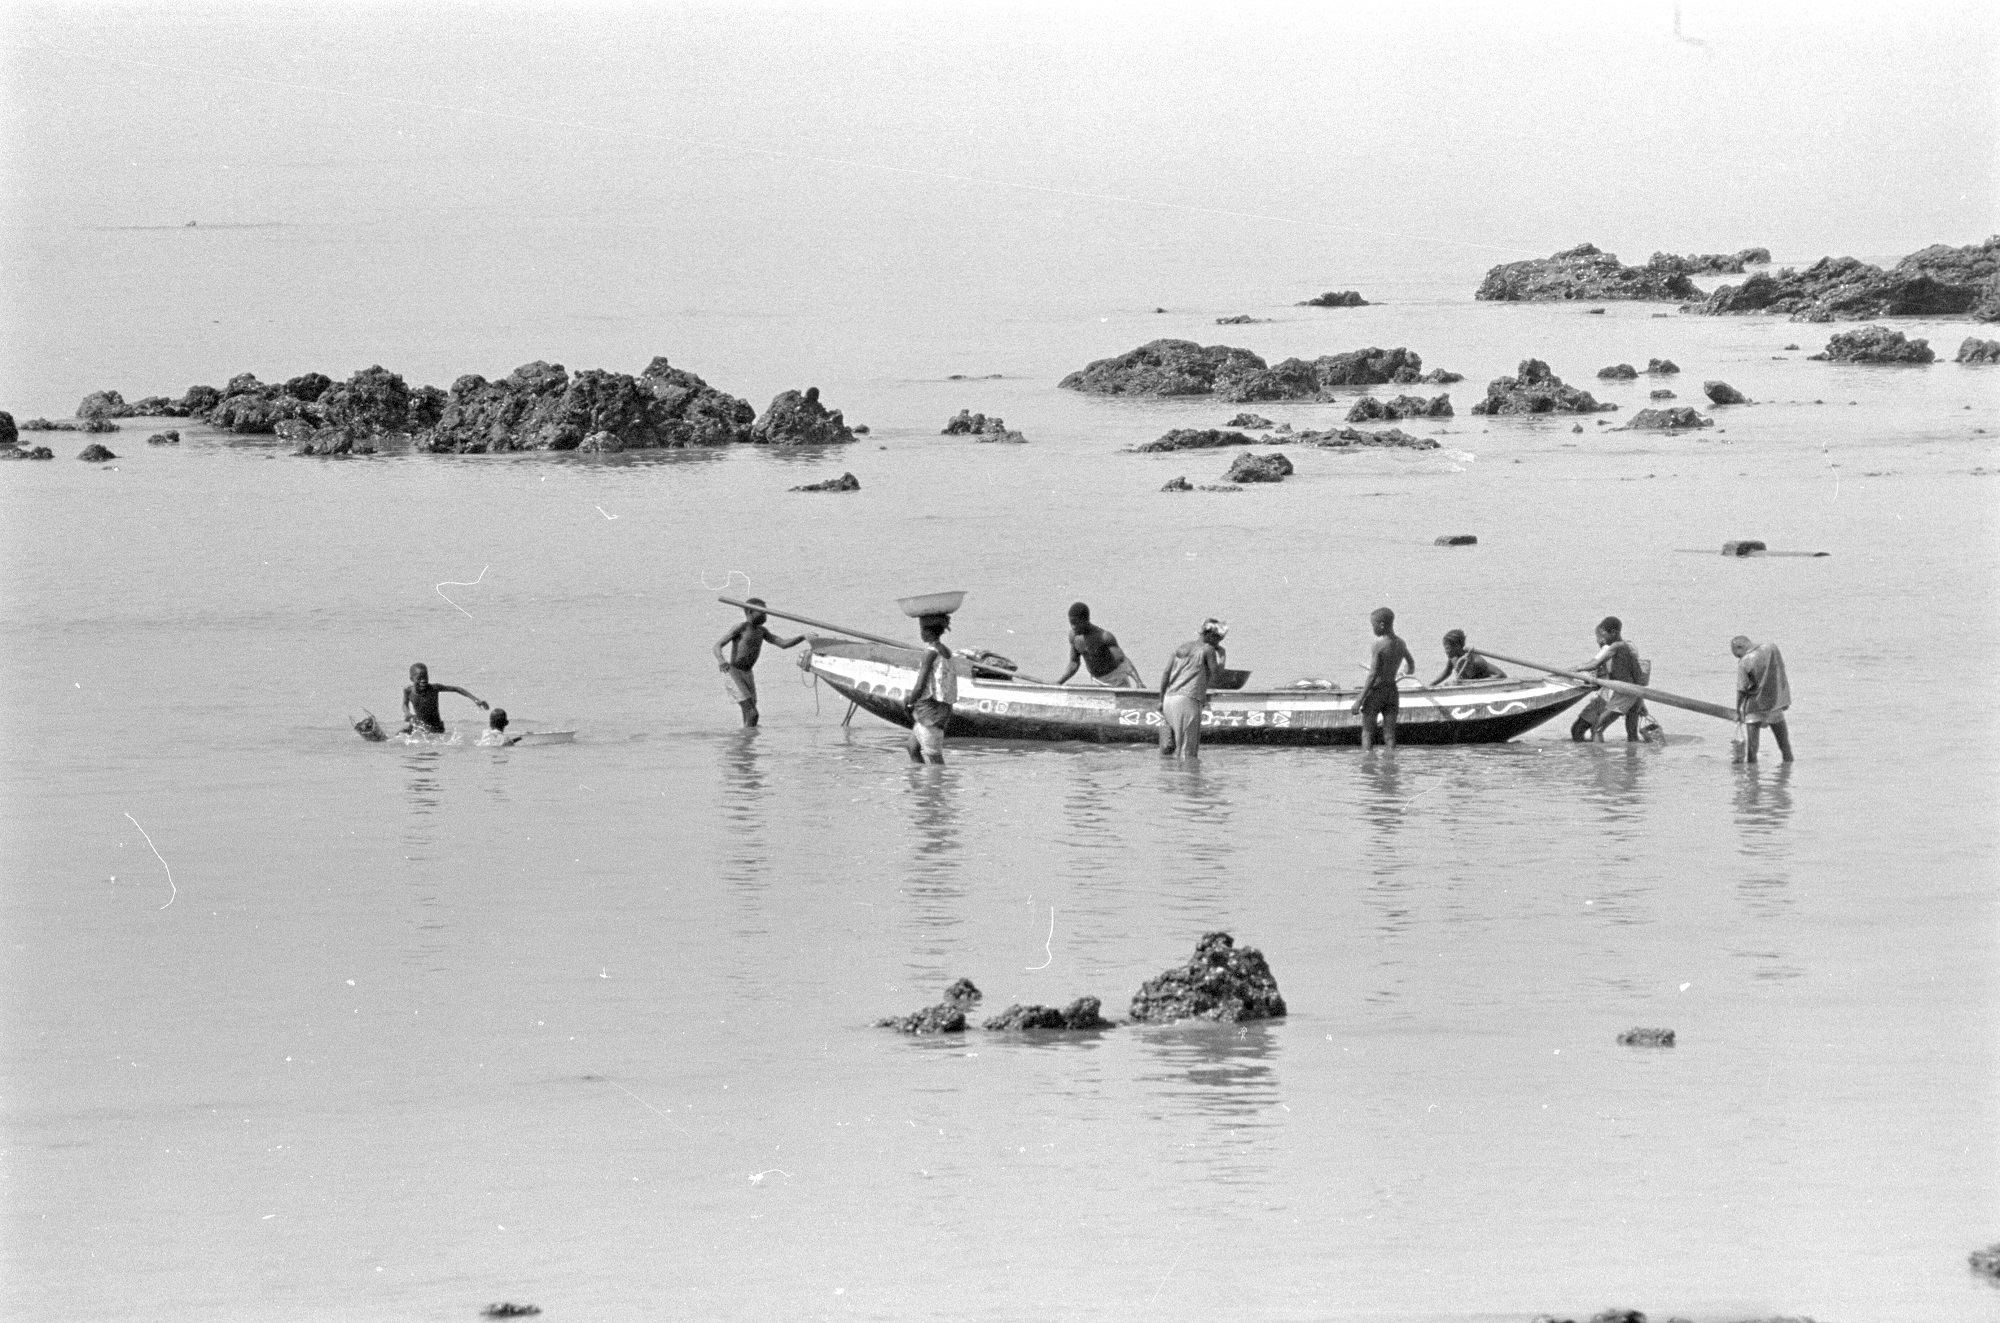 Fishermen in Sierra Leone. From Walt Girdner's Africa collection.